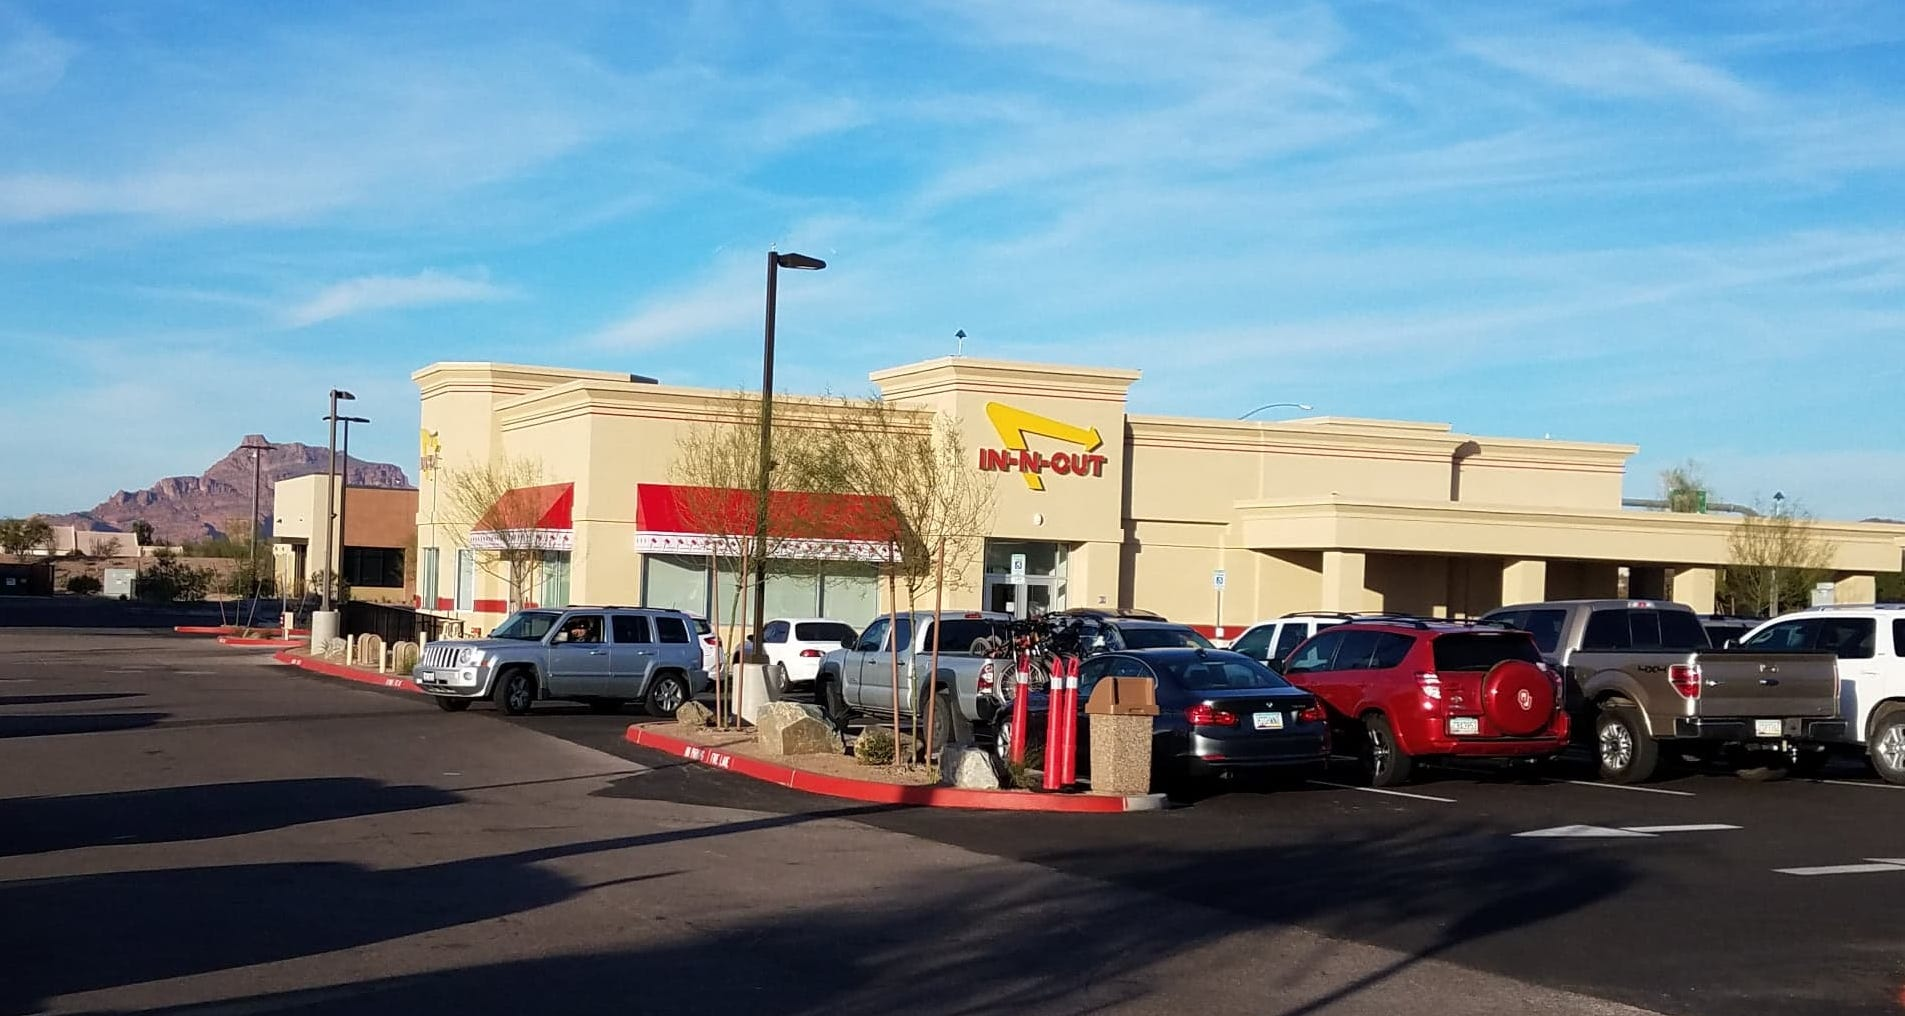 Iconic chain In-N-Out Burger opened a location in Mesa on Recker Road just south of Loop 202 Red Mountain freeway.